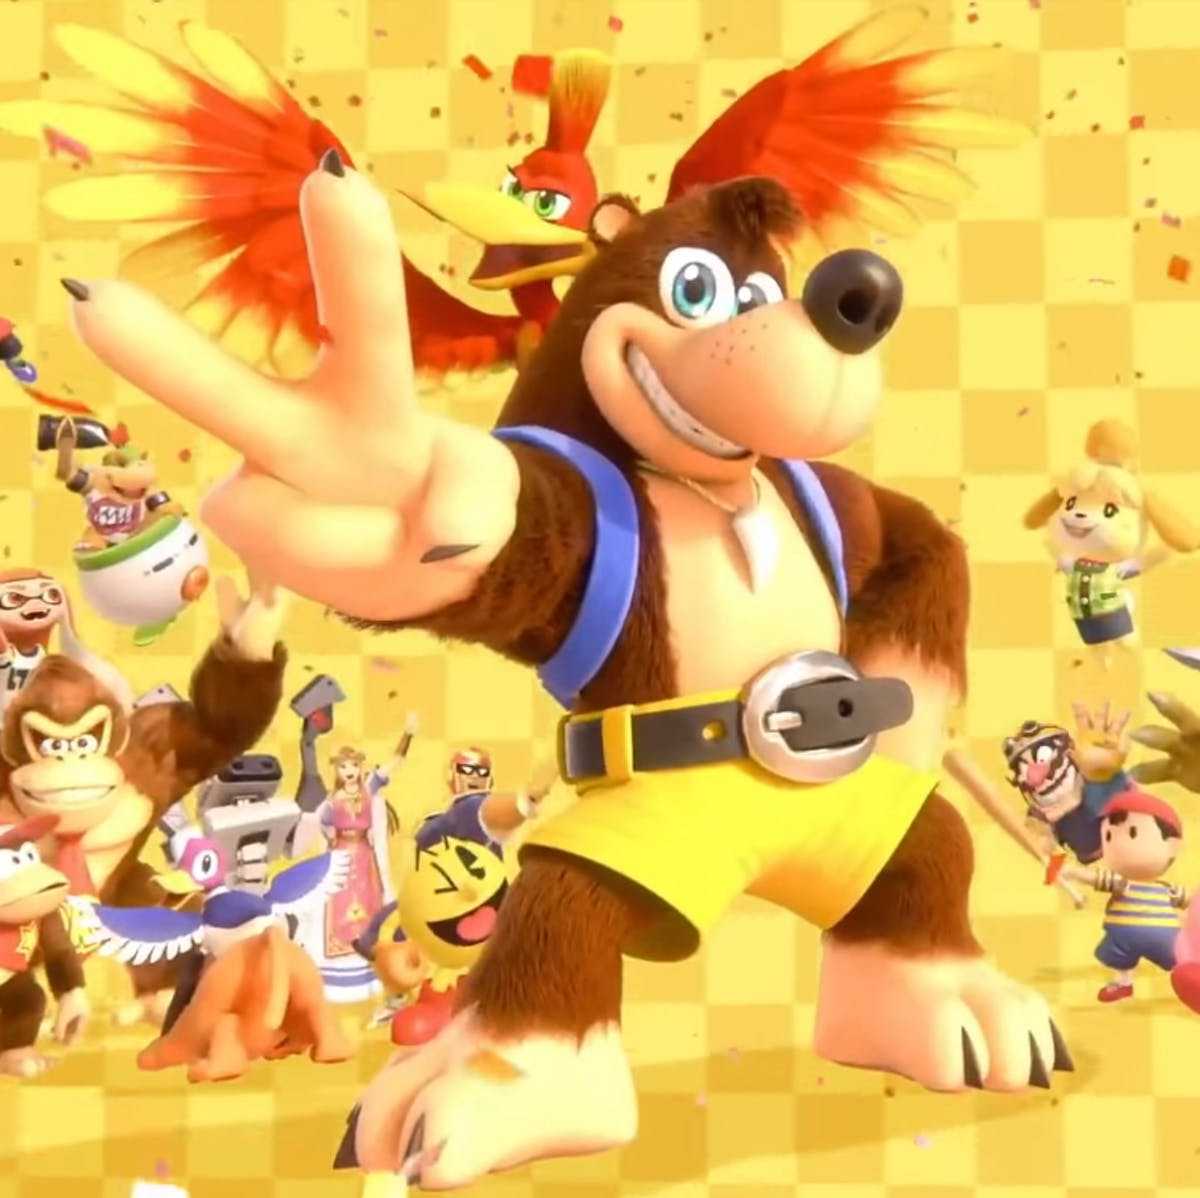 Smash Ultimate Tier List: How Banjo-Kazooie Ranks in Early Reviews by Pros